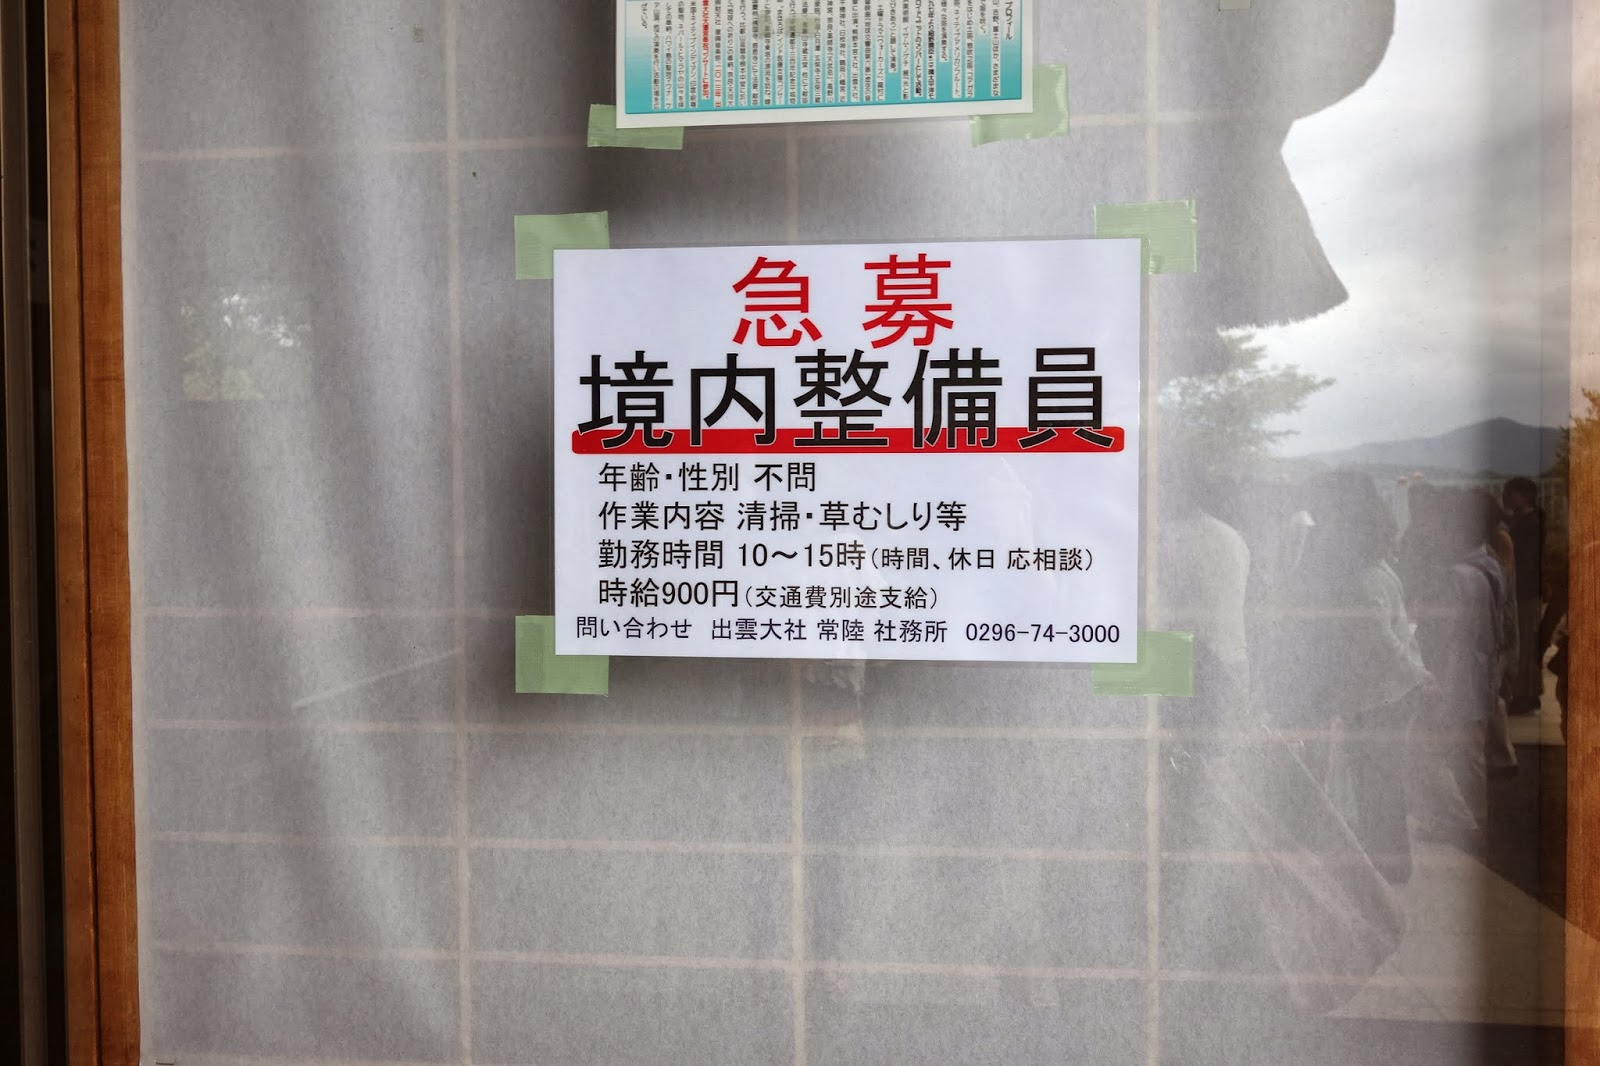 japanese recruitment notice for cleaners